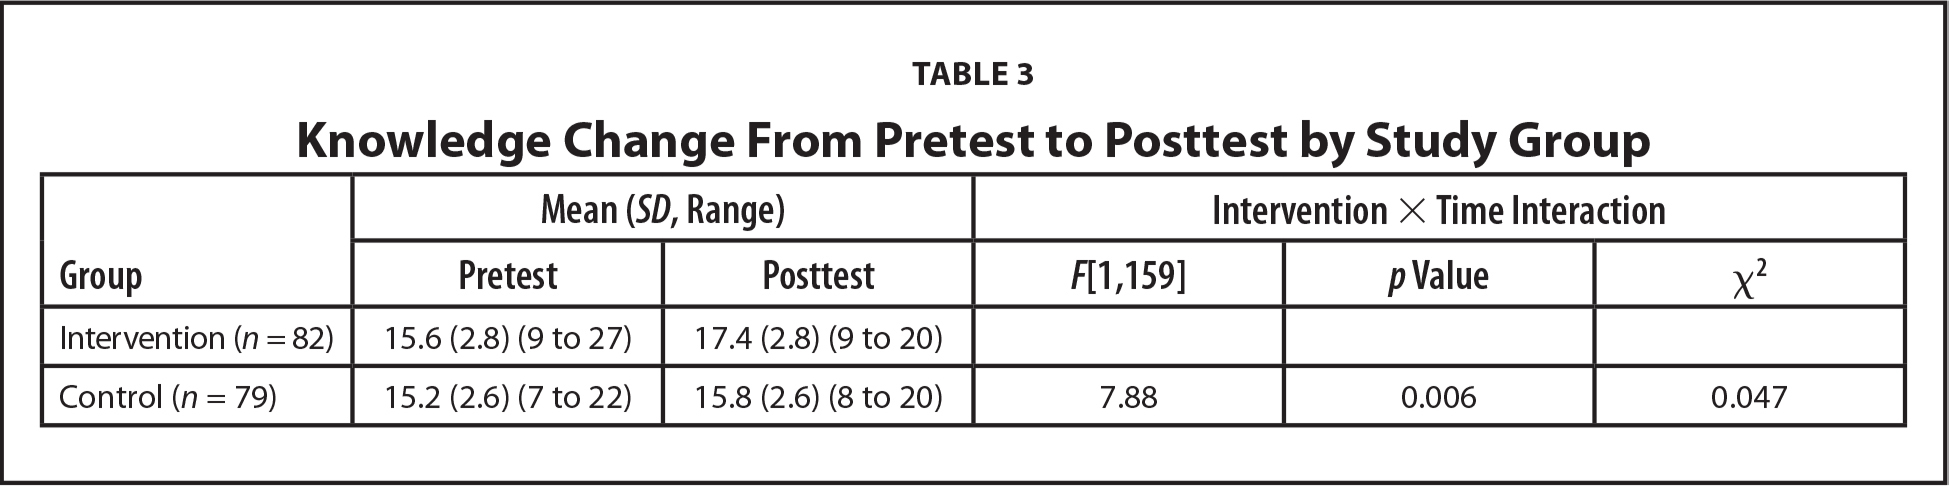 Knowledge Change From Pretest to Posttest by Study Group